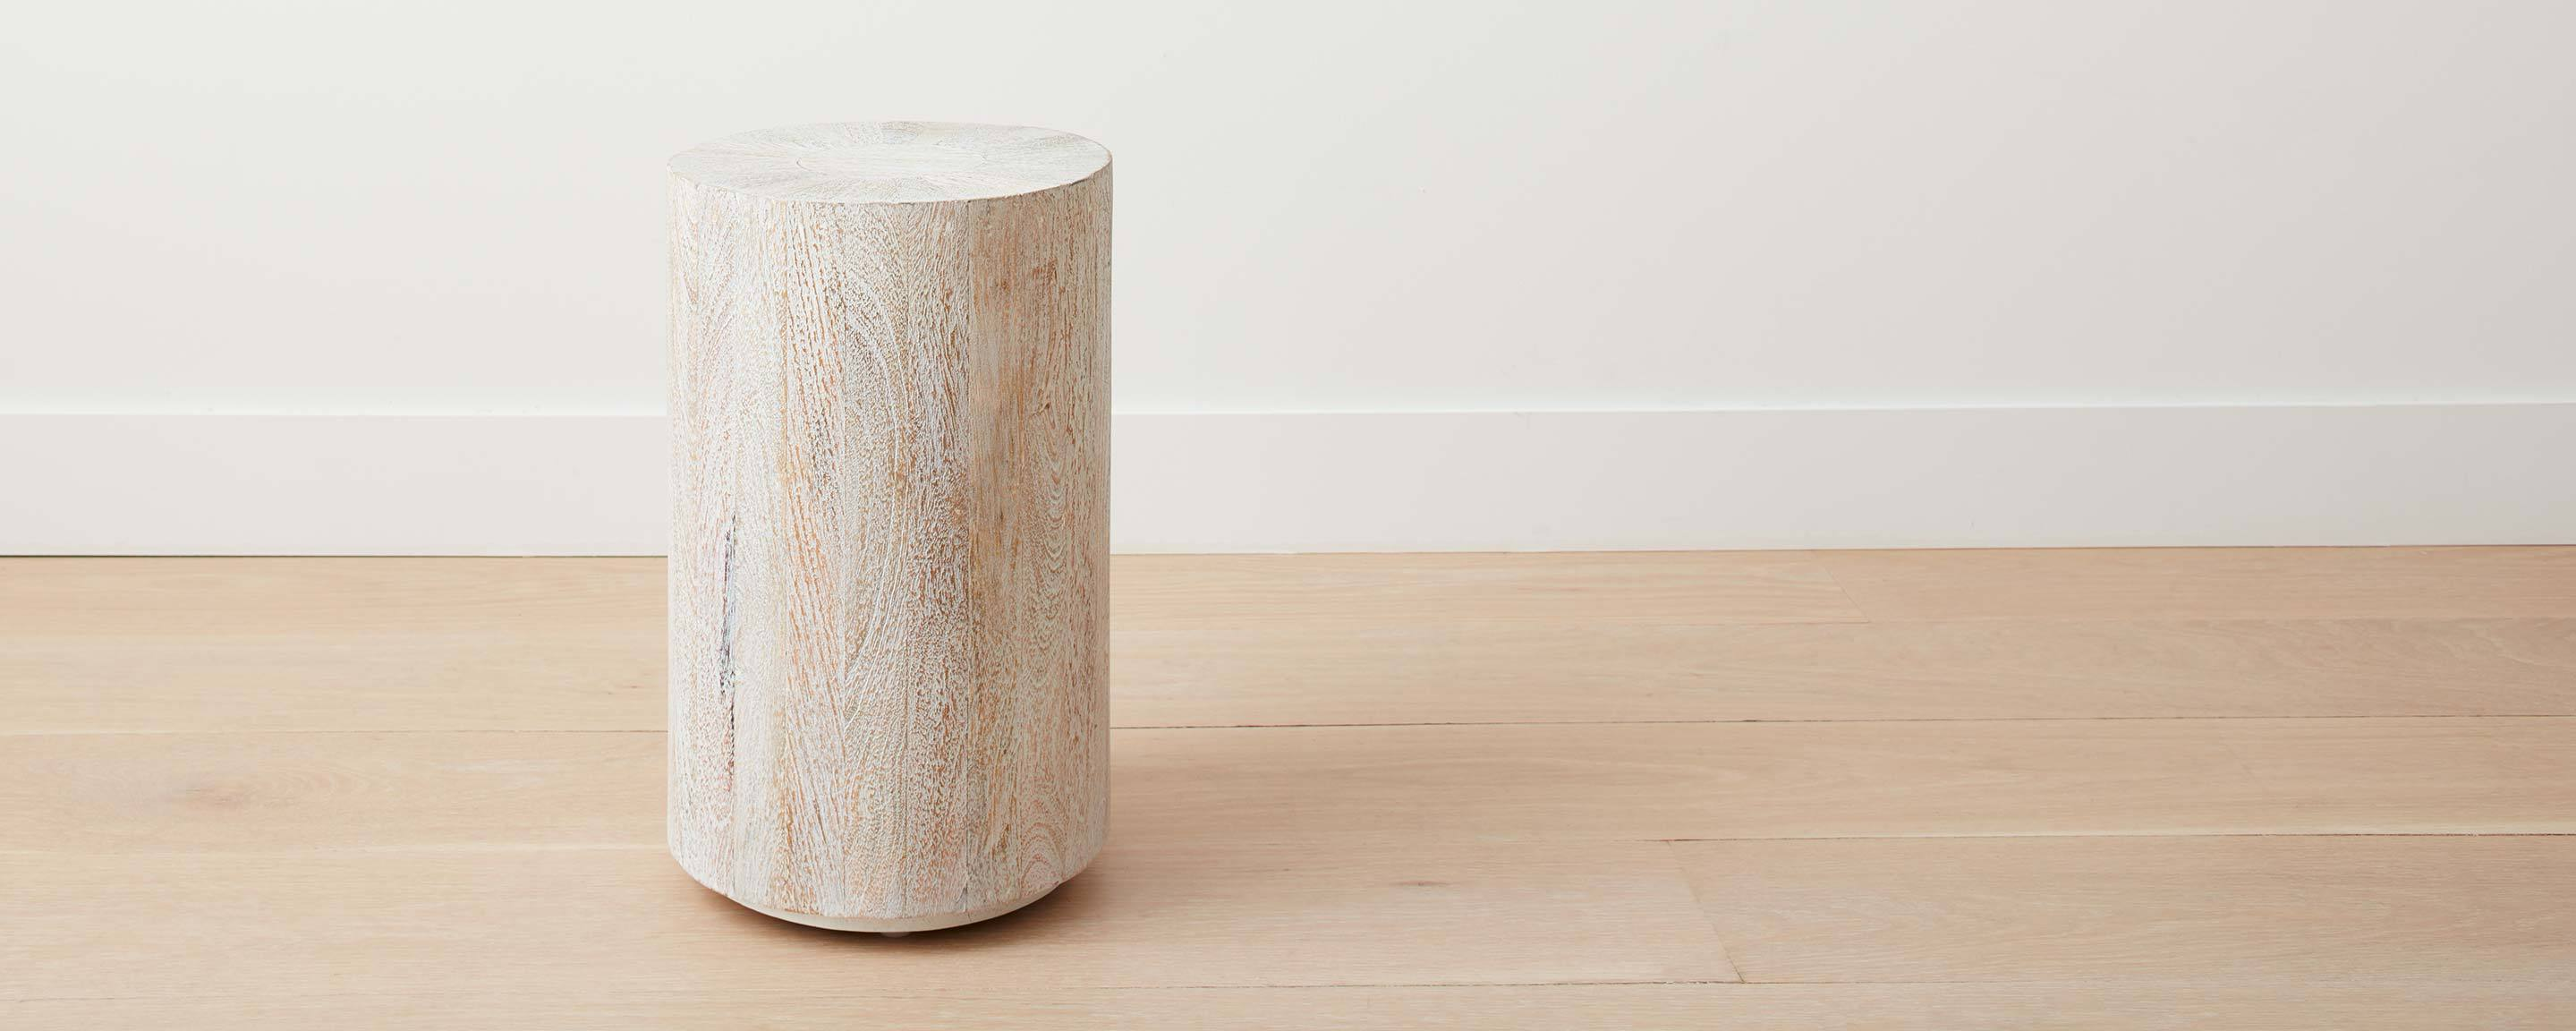 driftwood drum end table/stool